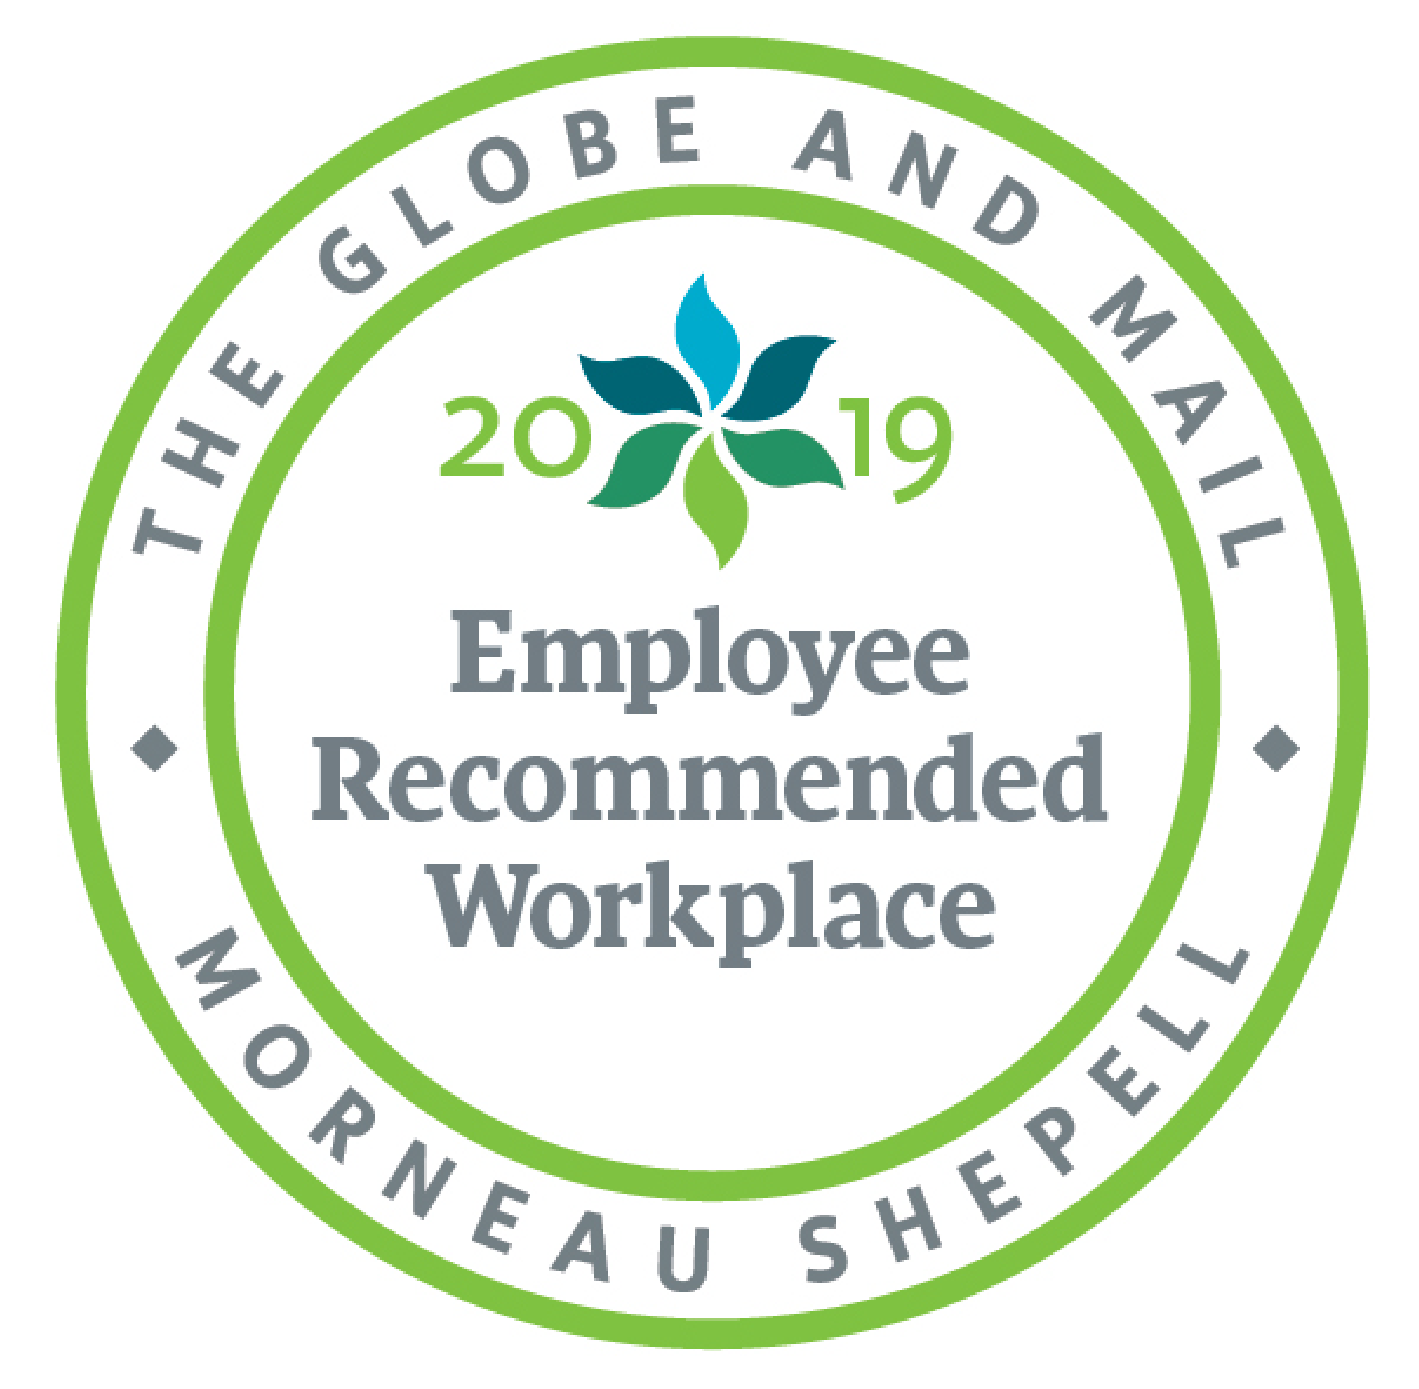 Employee Recommended Workplace 2019